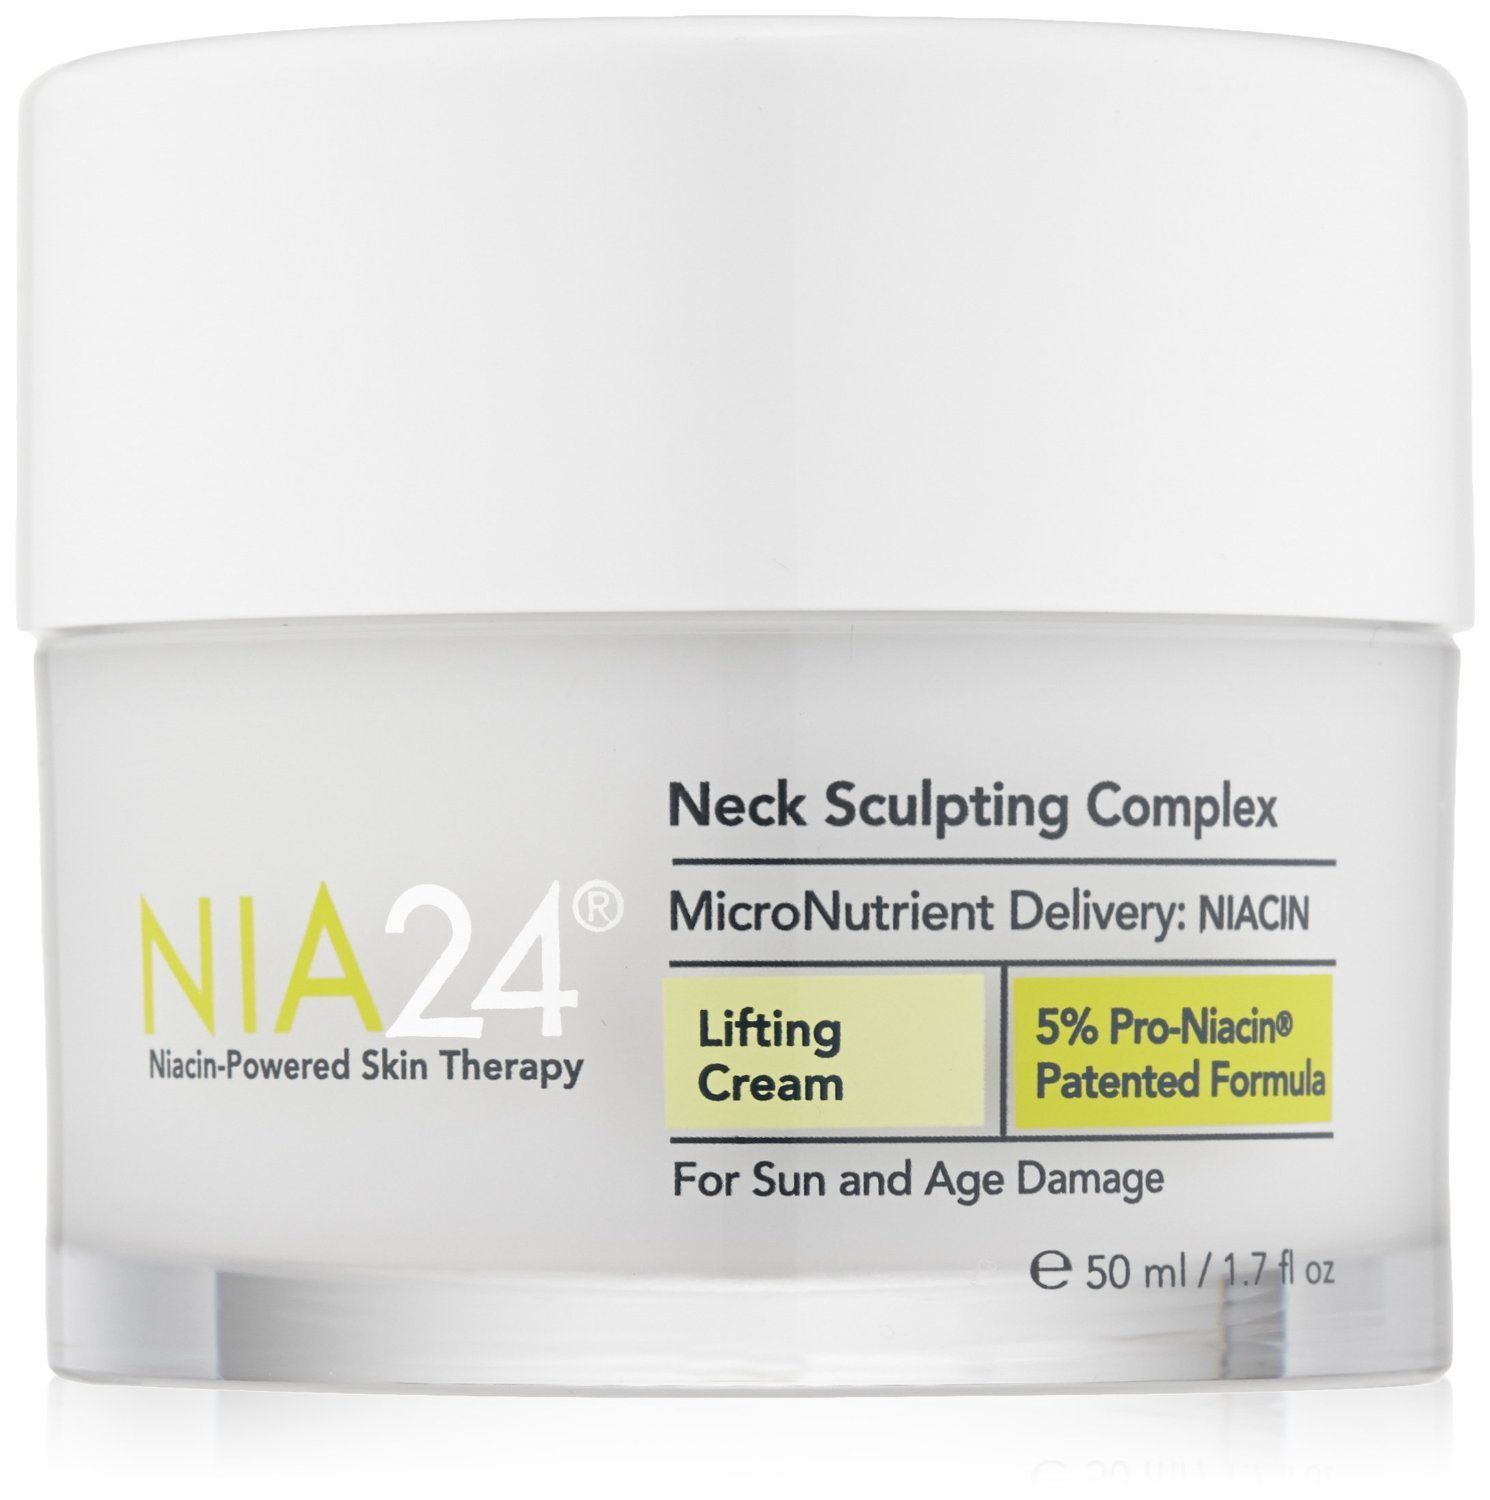 NIA24 Nia 24 Neck Sculpting Complex - 1.7 oz / 50 ml New Fresh - Authentic - $56.99